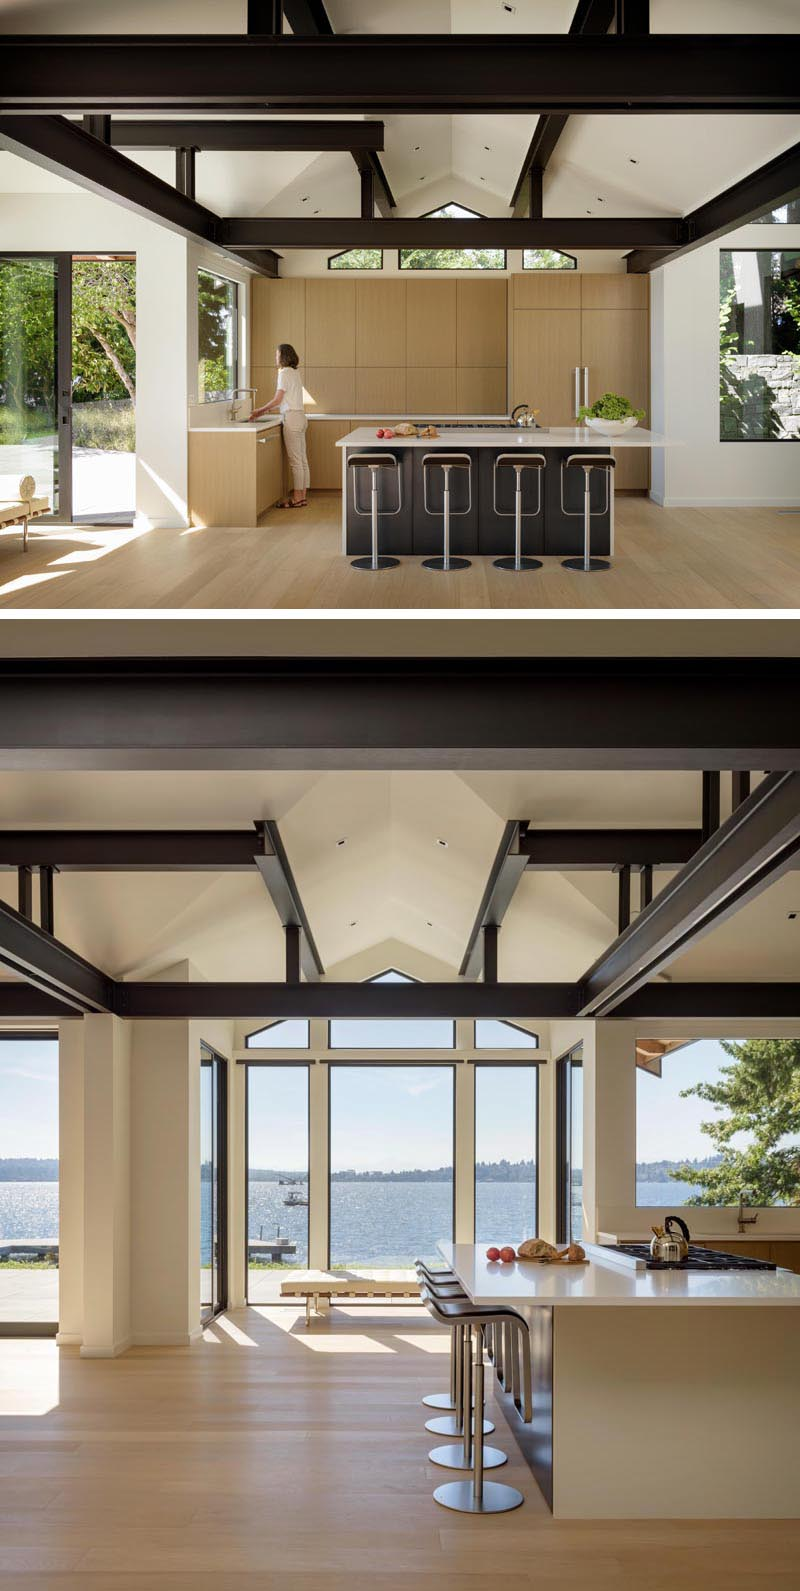 In this modern kitchen, light wood cabinets are complemented by white countertops, while dark cabinets on the kitchen island tie in with the black beams above. #KitchenDesign #LightWoodCabinets #ModernKitchen #Windows